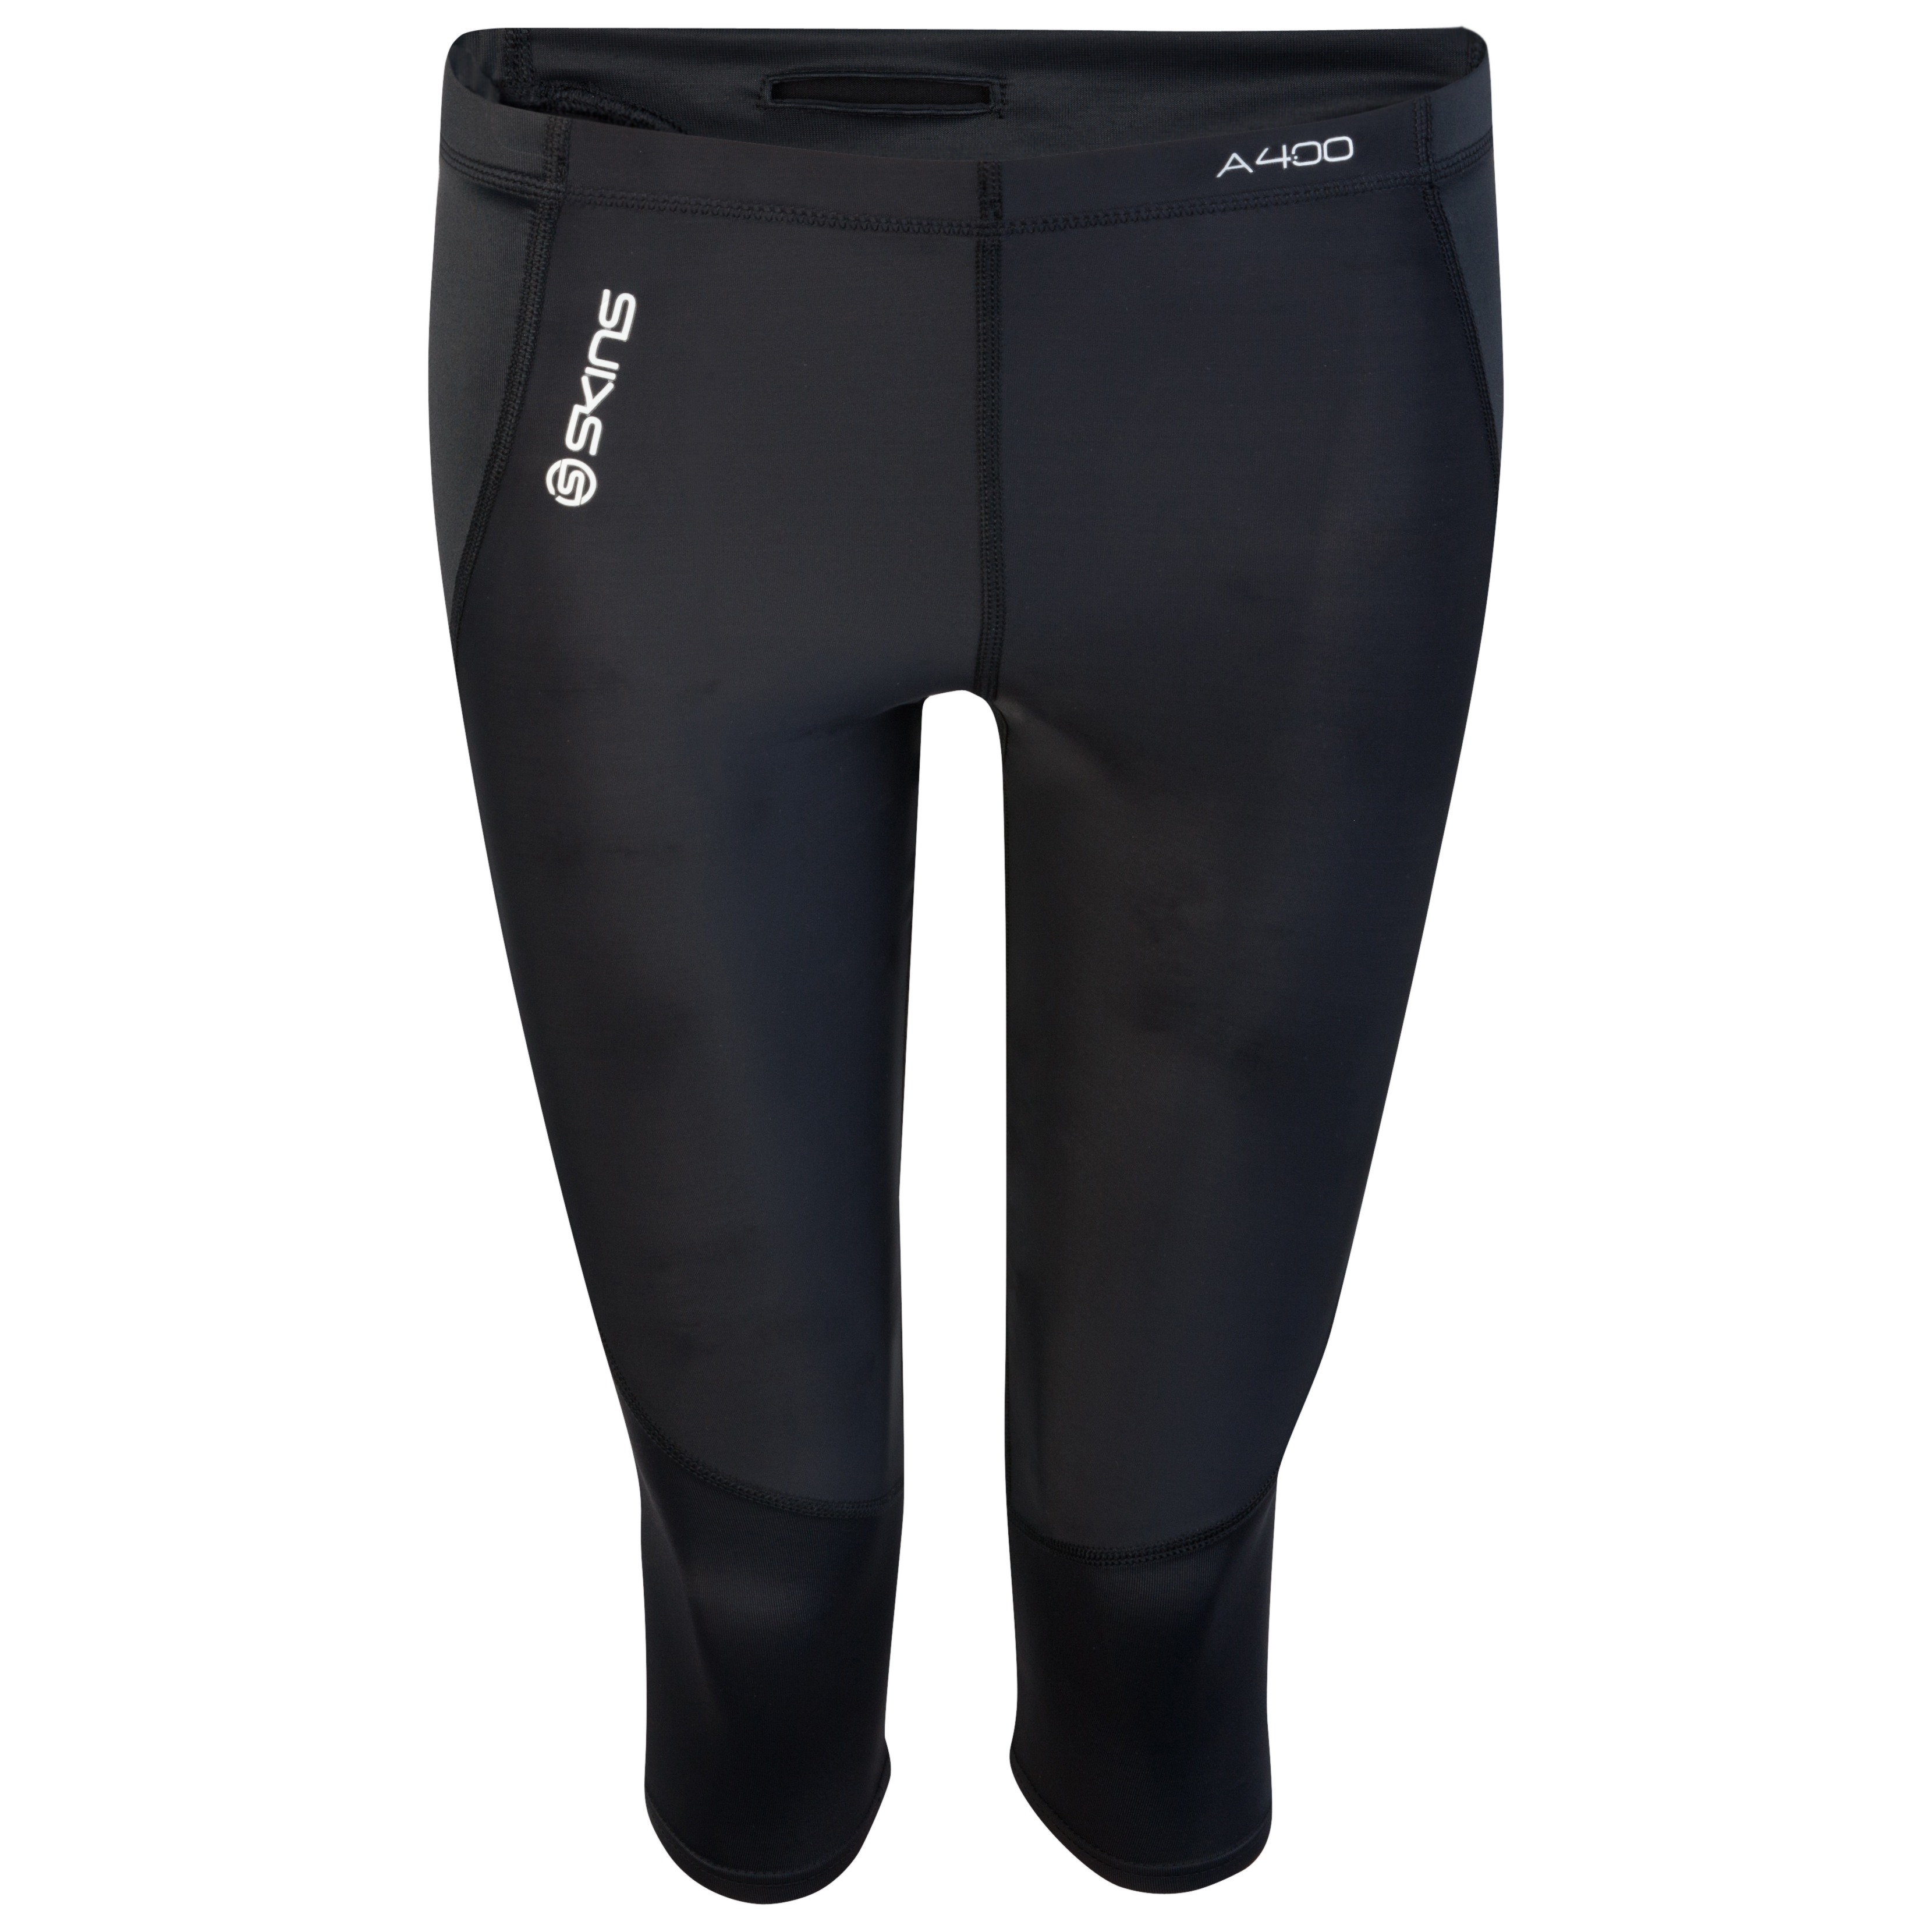 Skins A400 Active 3/4 Tights - Black/Silver - Womens